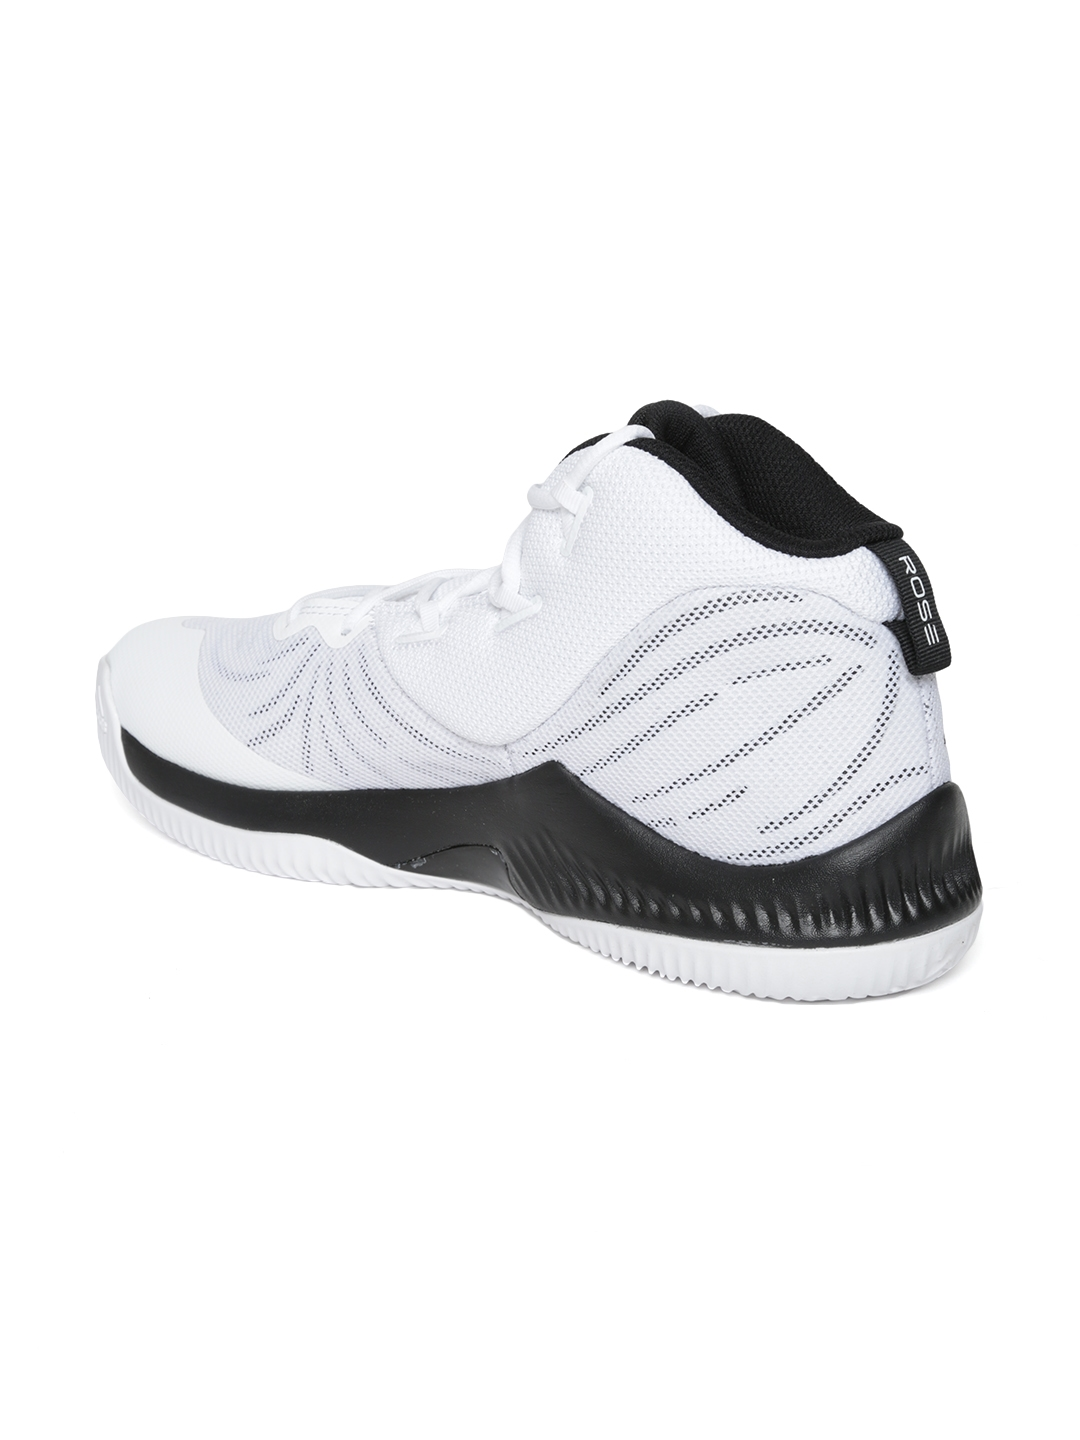 check out 29e30 017fb ADIDAS Men White D Rose Dominate III Basketball Shoes